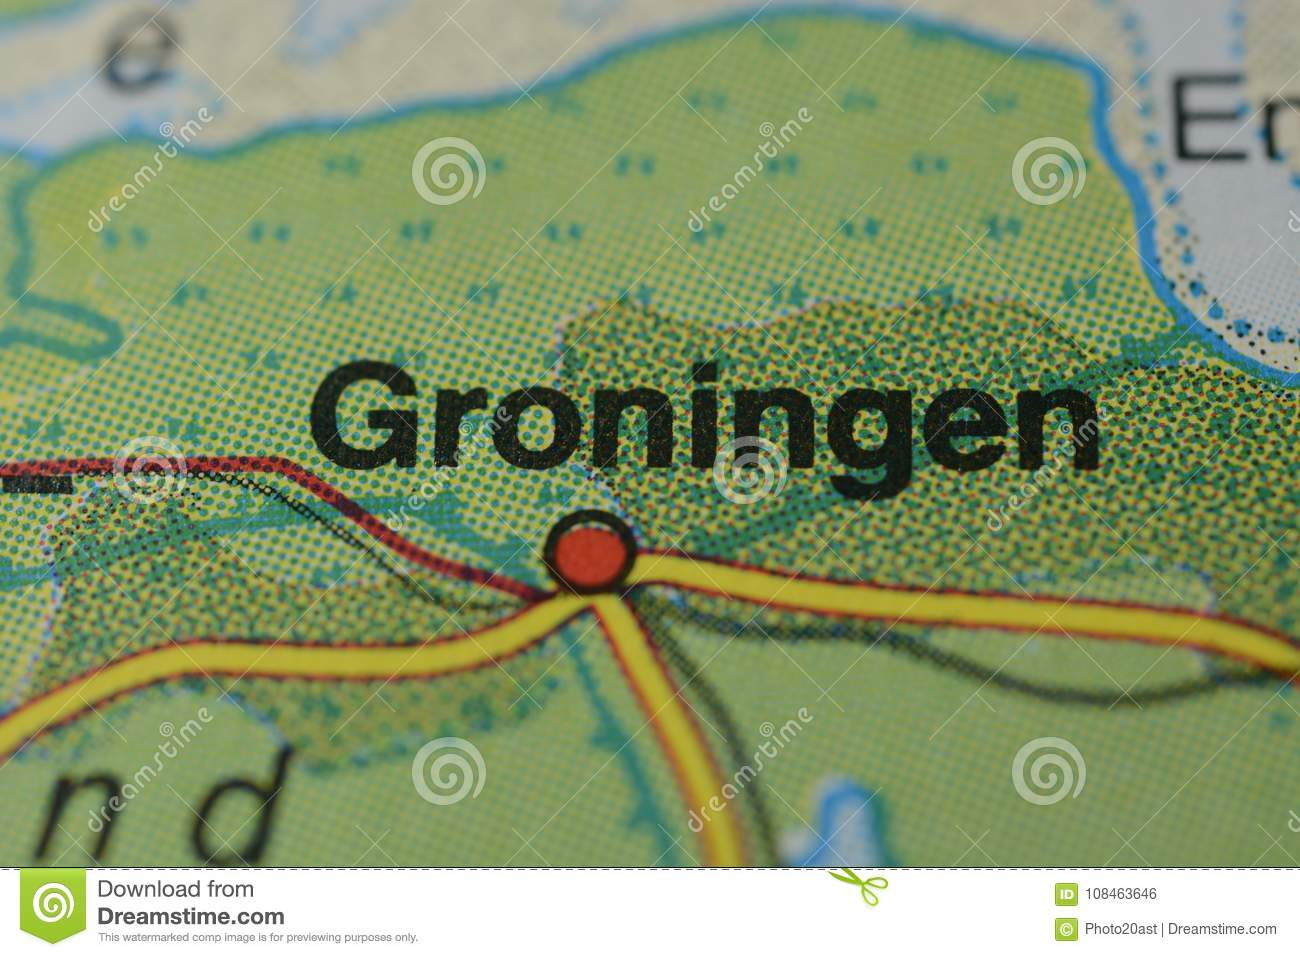 The City Name GRONINGEN On The Map Stock Photo - Image of names ...